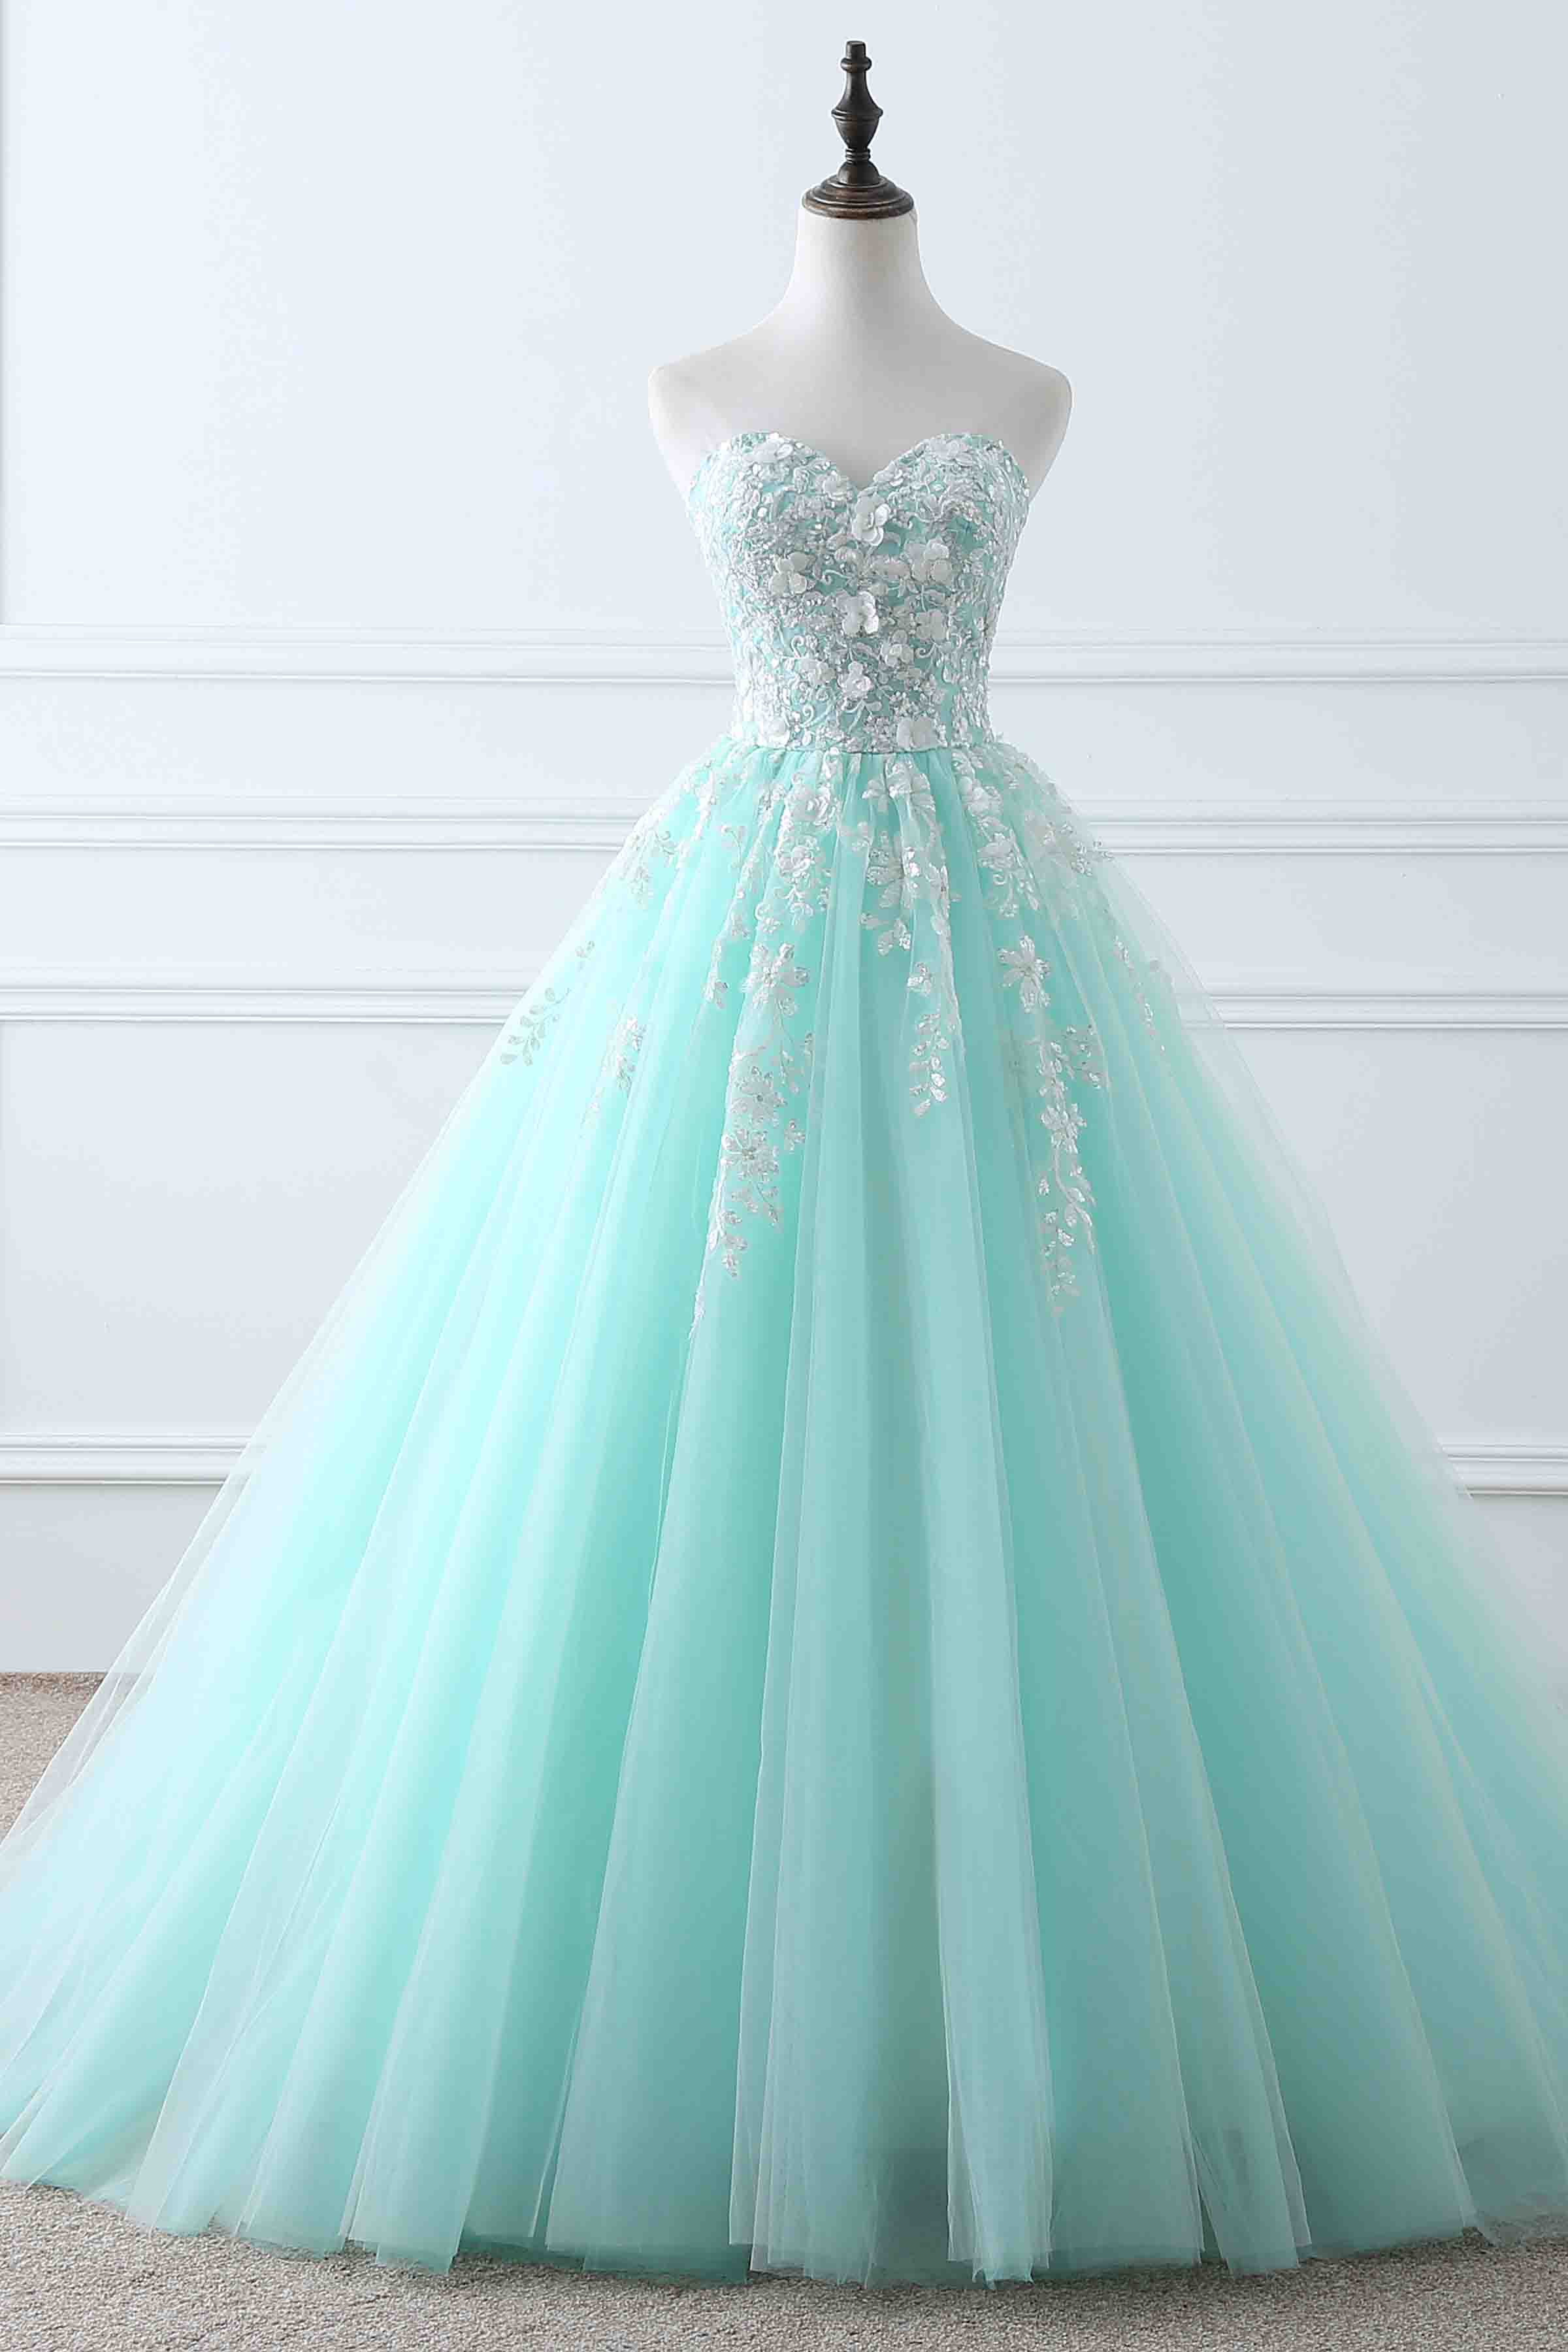 2e3a1e90986 Light blue tulle applique sweetheart lace up ball gown dresses ...